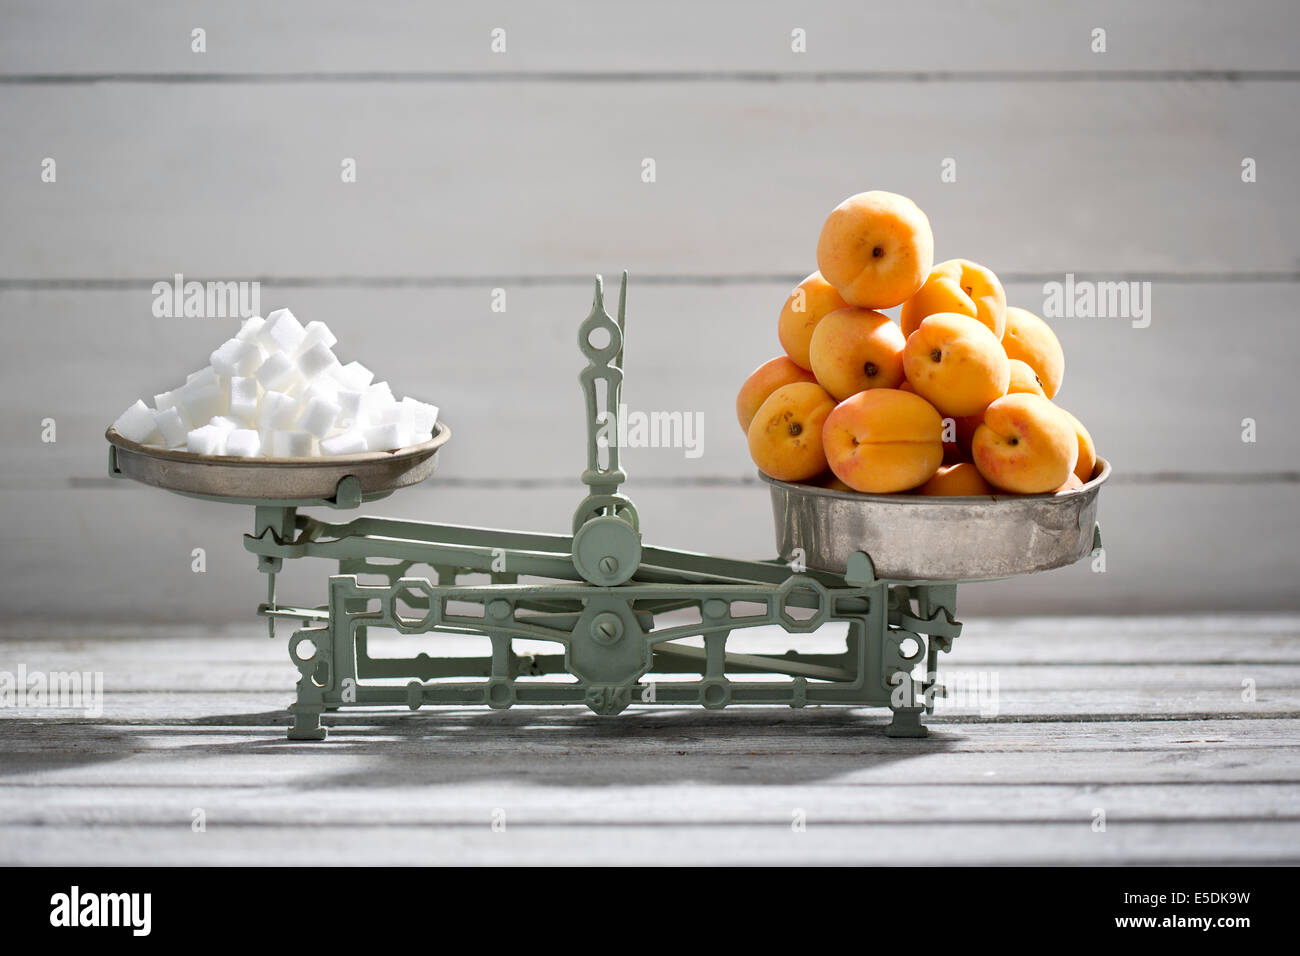 Apricots and sugar cubes on a scale - Stock Image